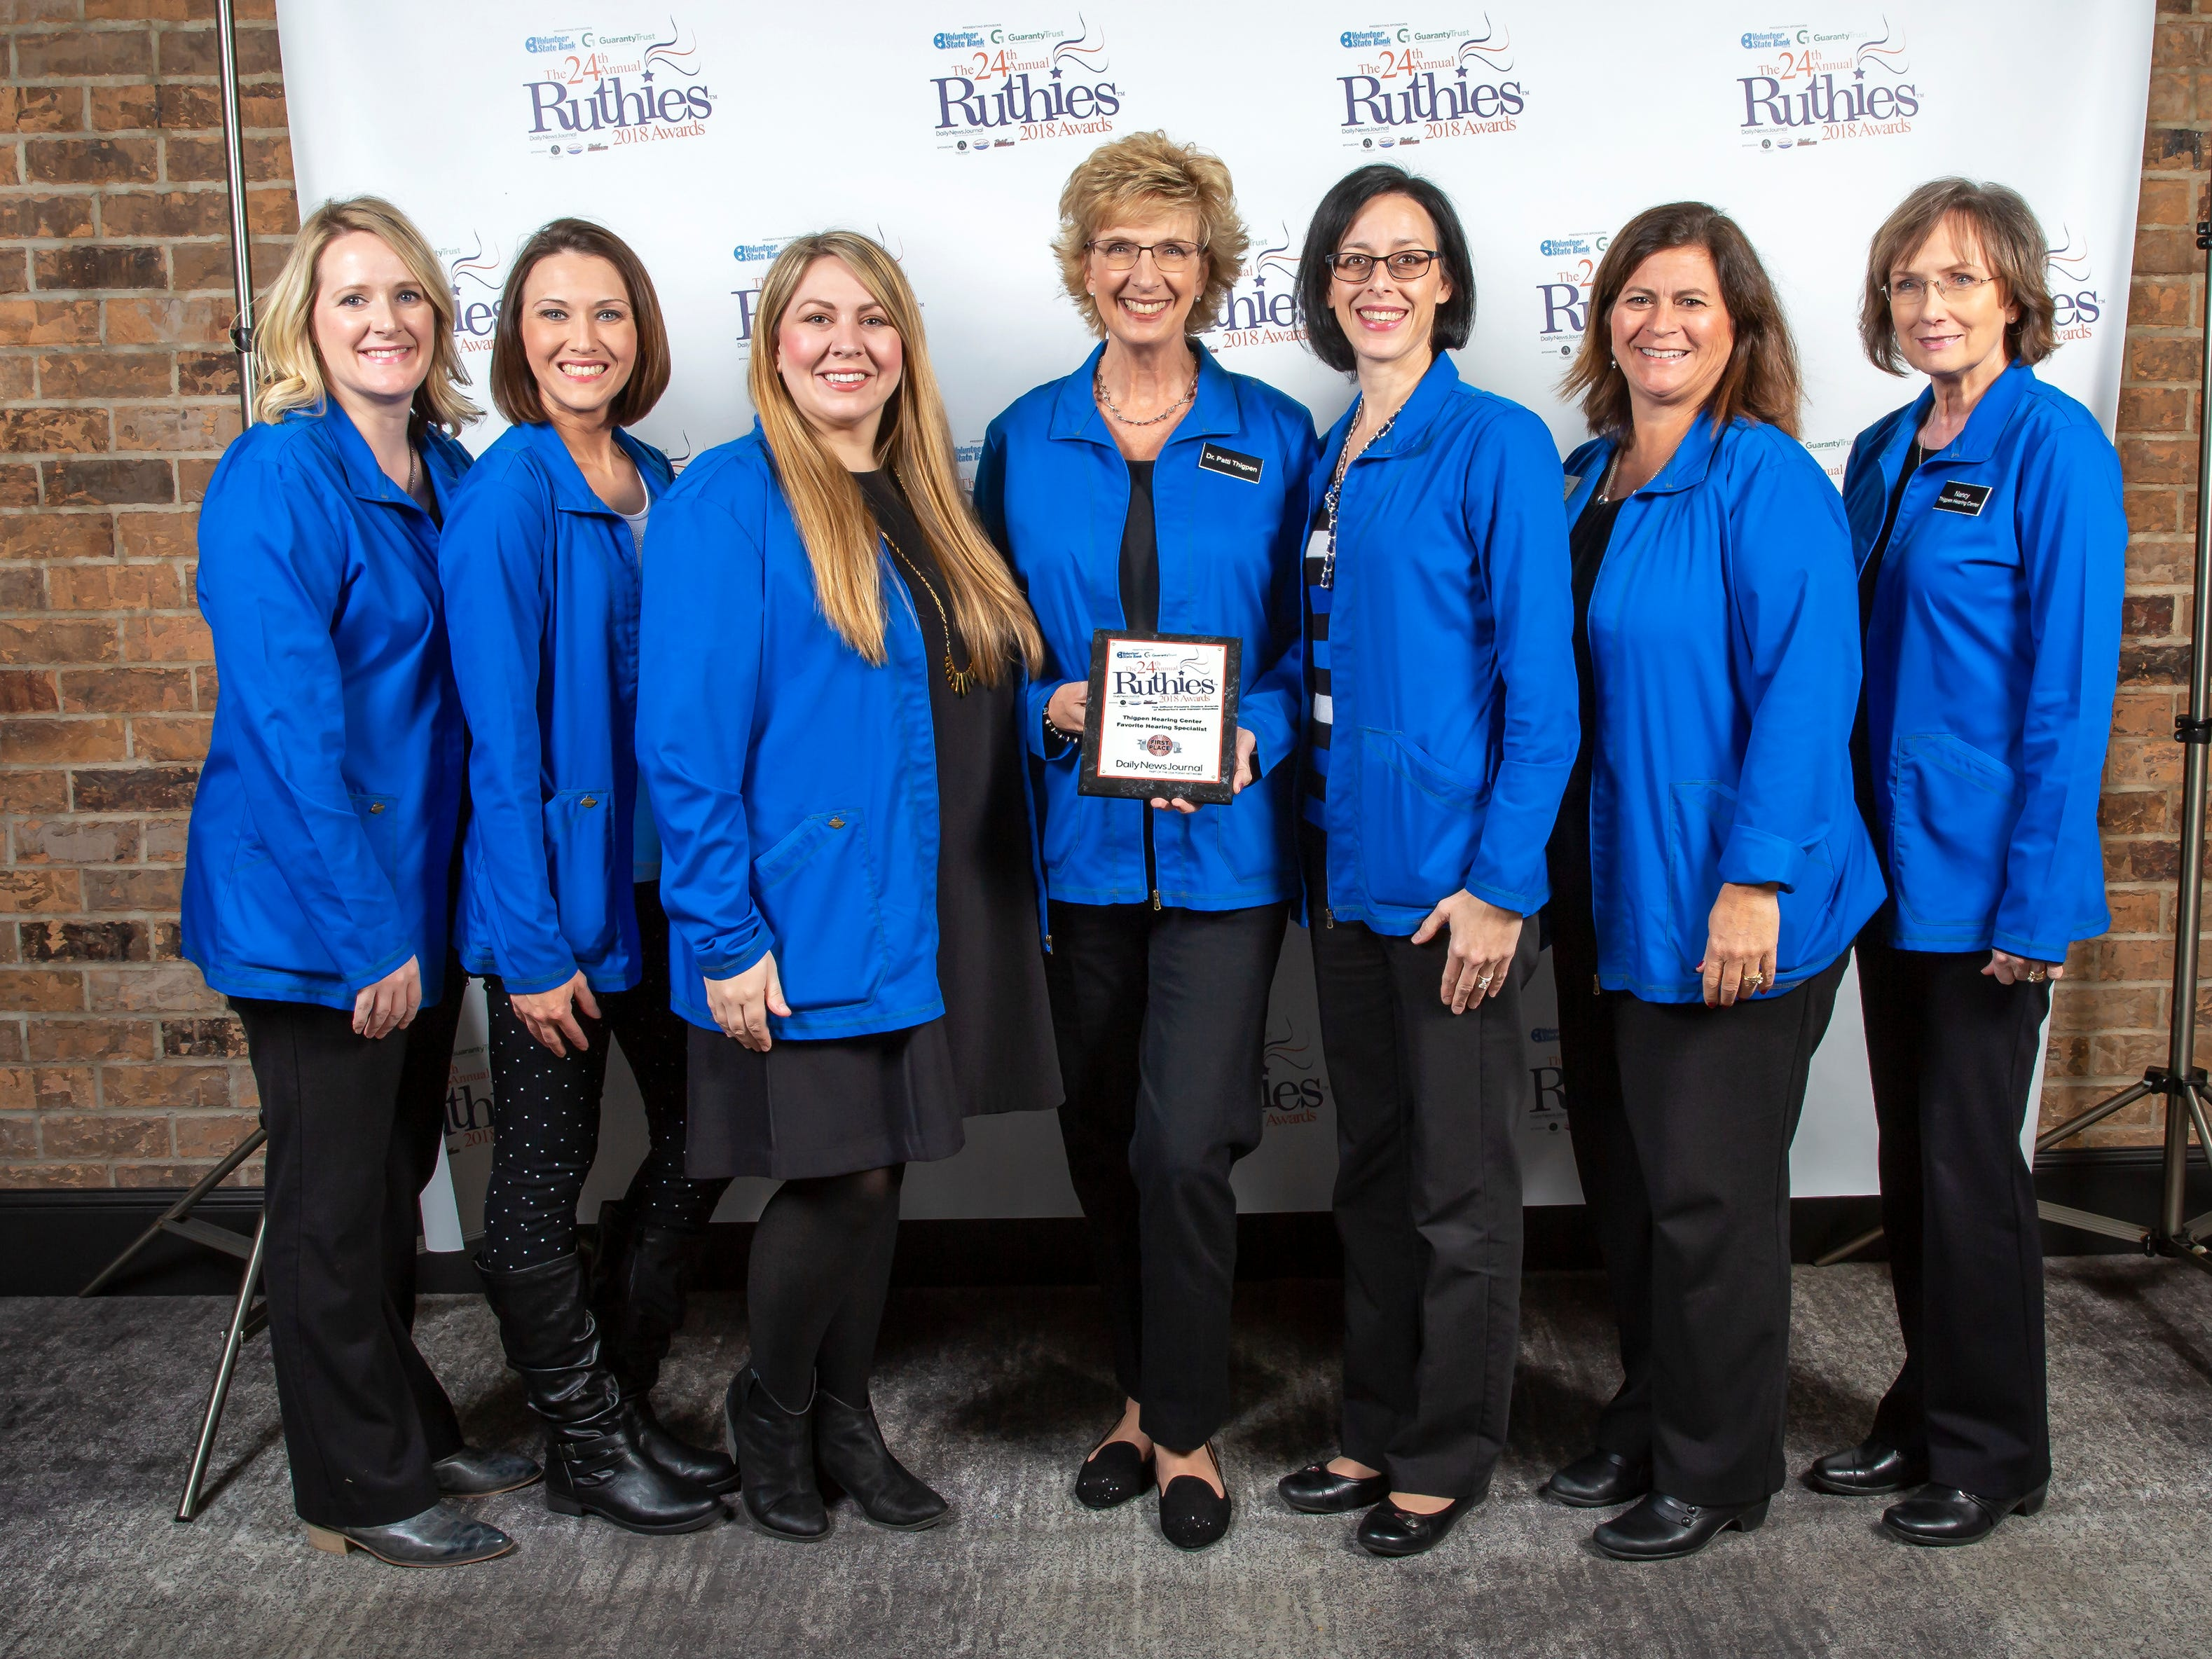 The 24th annual Ruthies Awards were held Tuesday, Oct. 23, 2018 at DoubleTree Hotel in Murfreesboro, Tenn.